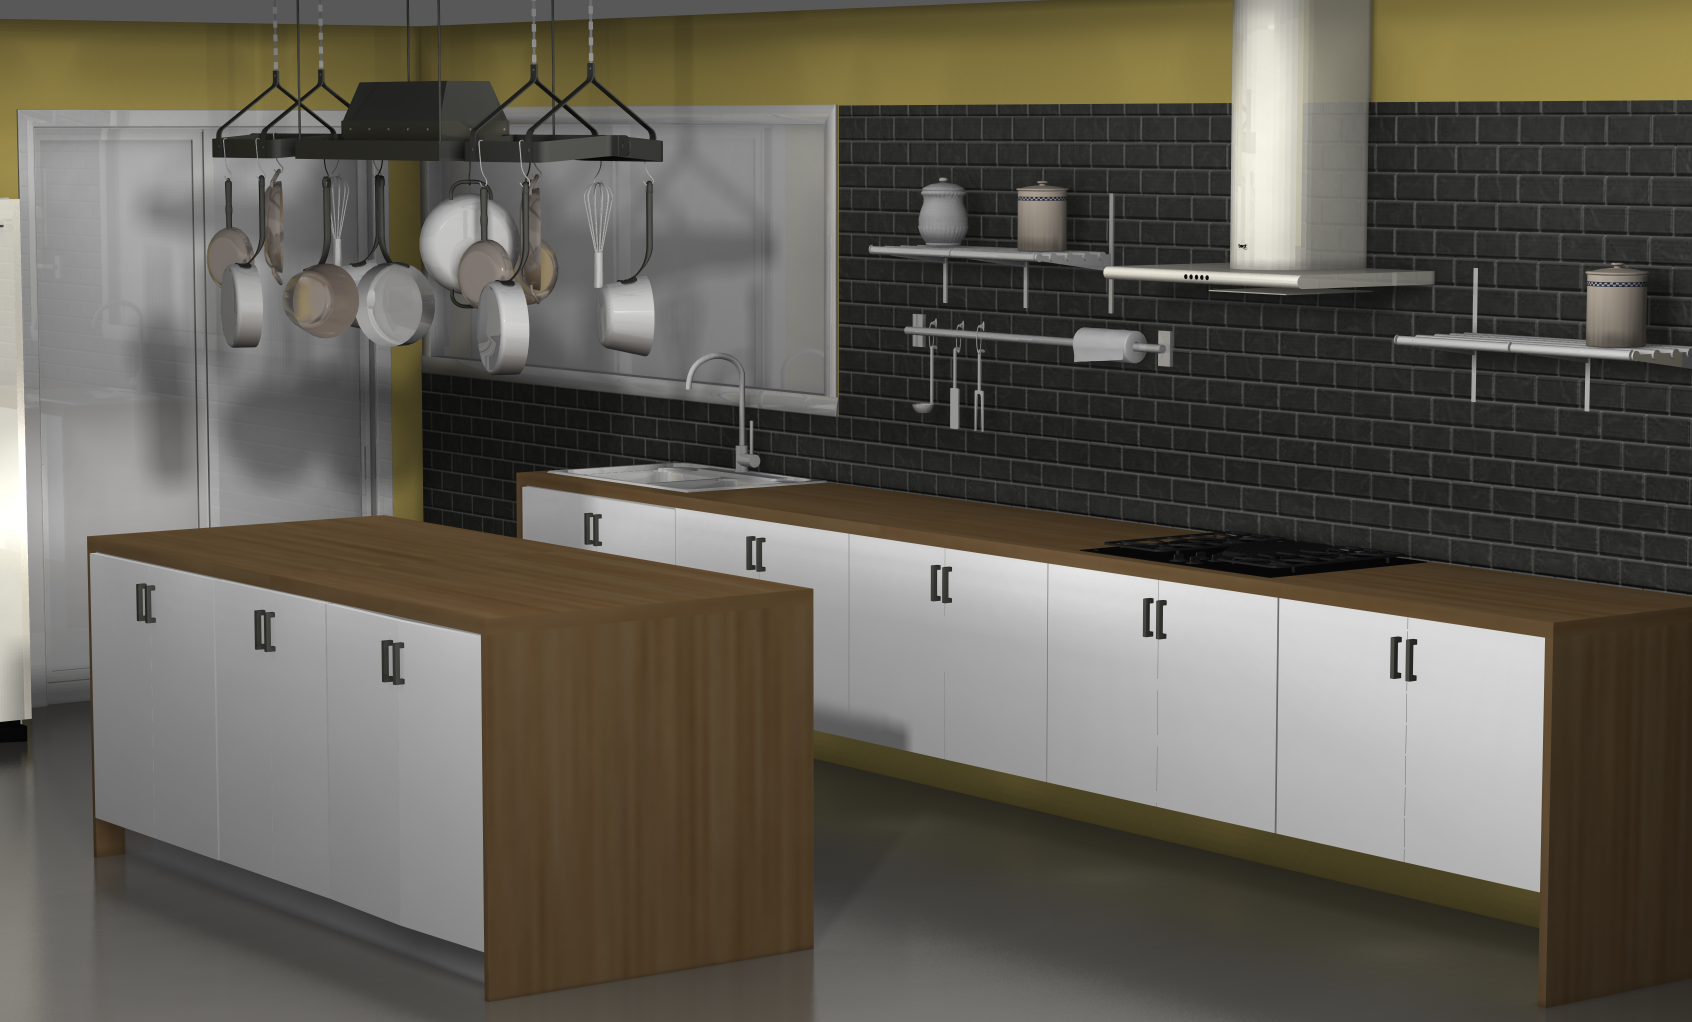 ideas for an ikea kitchen with fewer wall cabinets ikea kitchen ideas One